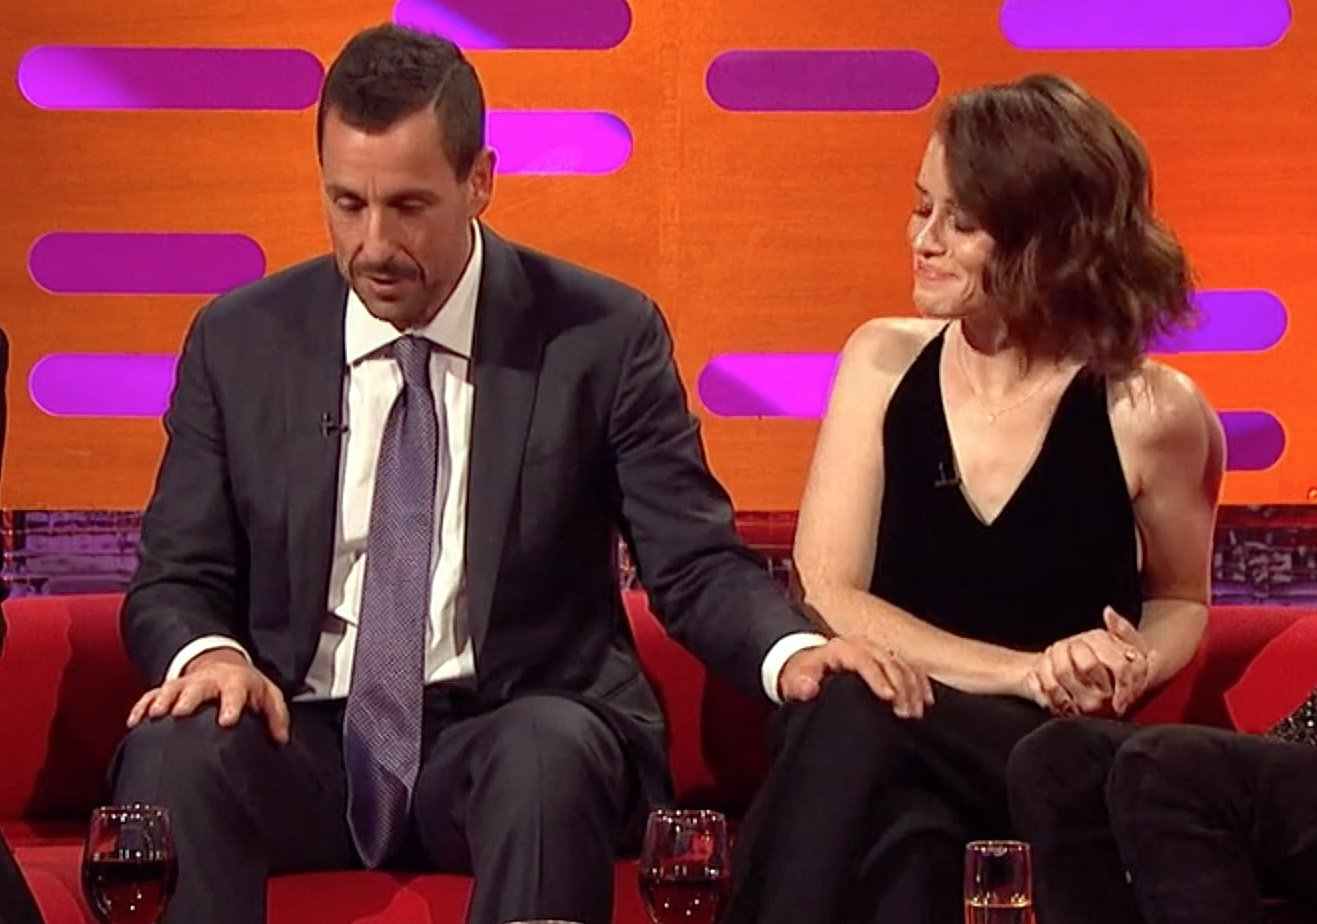 Claire Foy defends Adam Sandler and insists 'no offence was caused' as he is slammed for touching her knee during TV interview